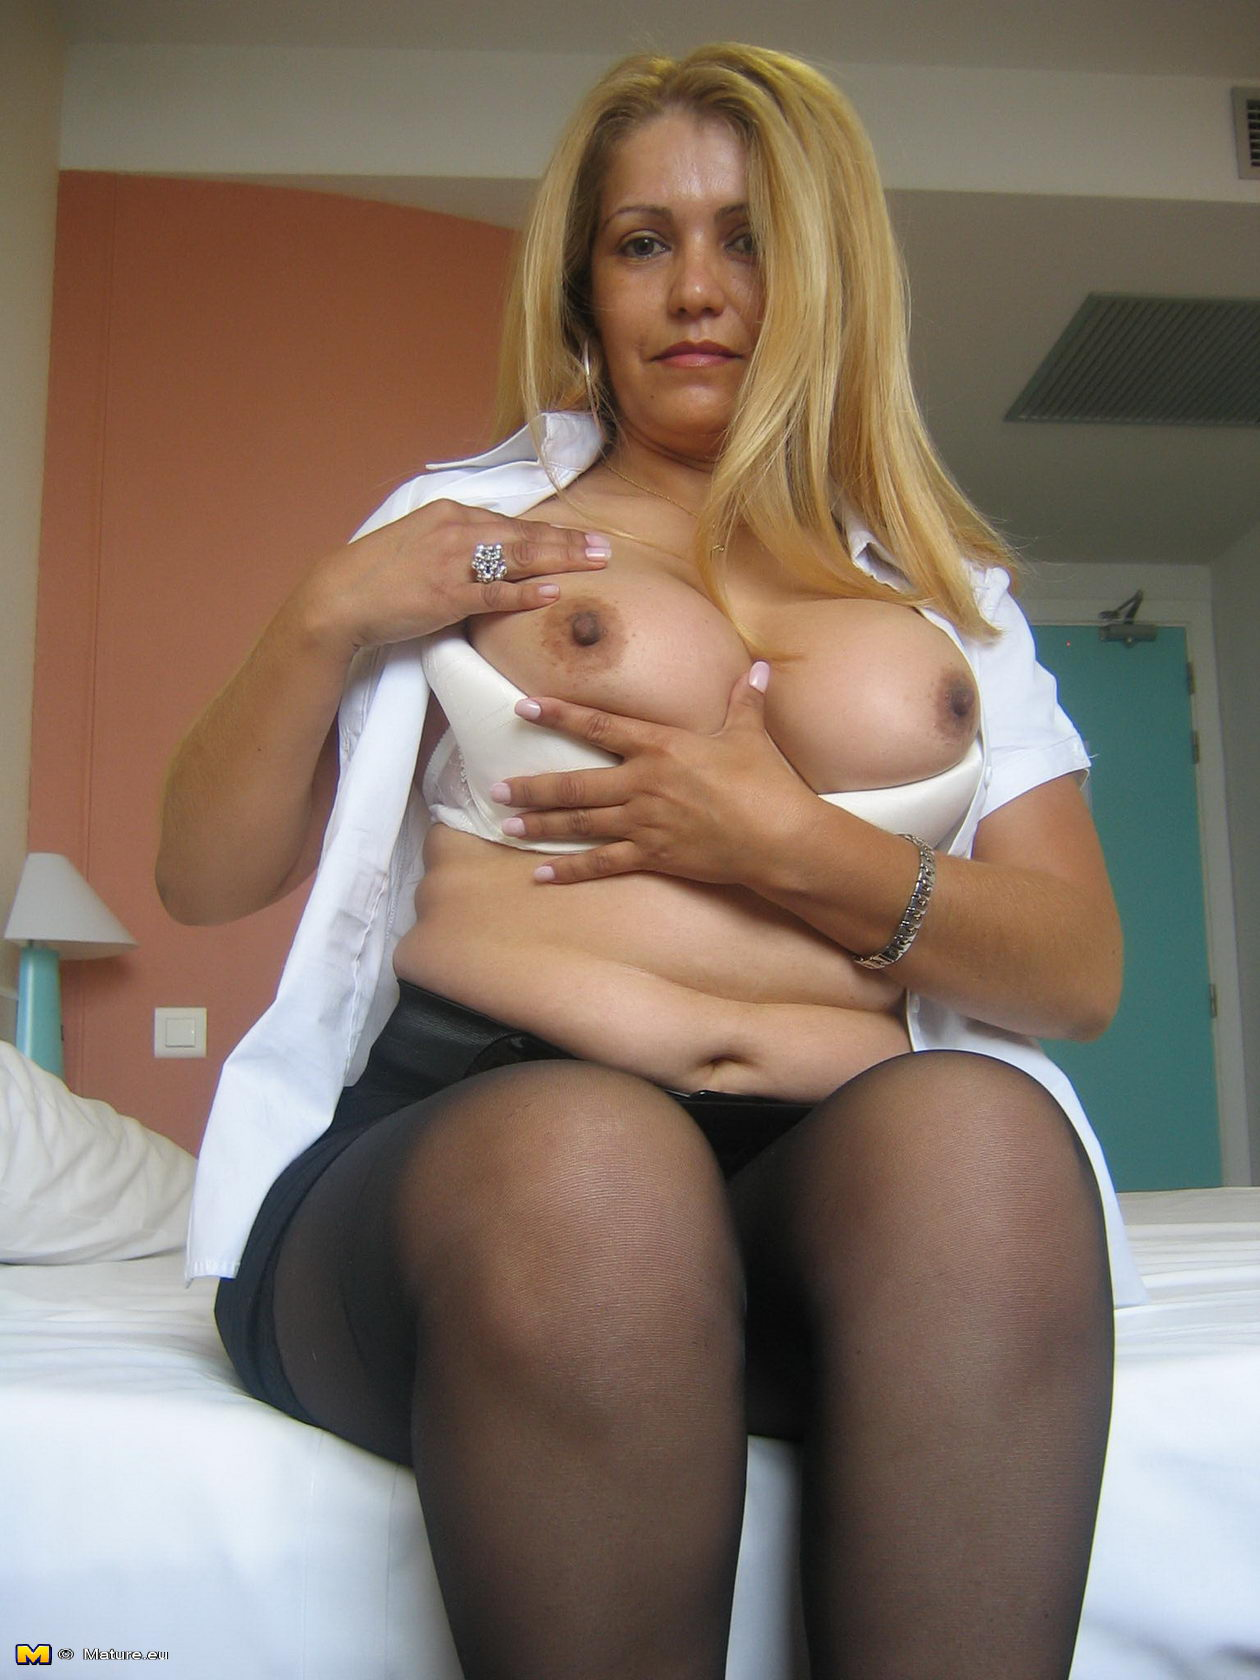 Mature loves her black solid sausage - 96 part 8